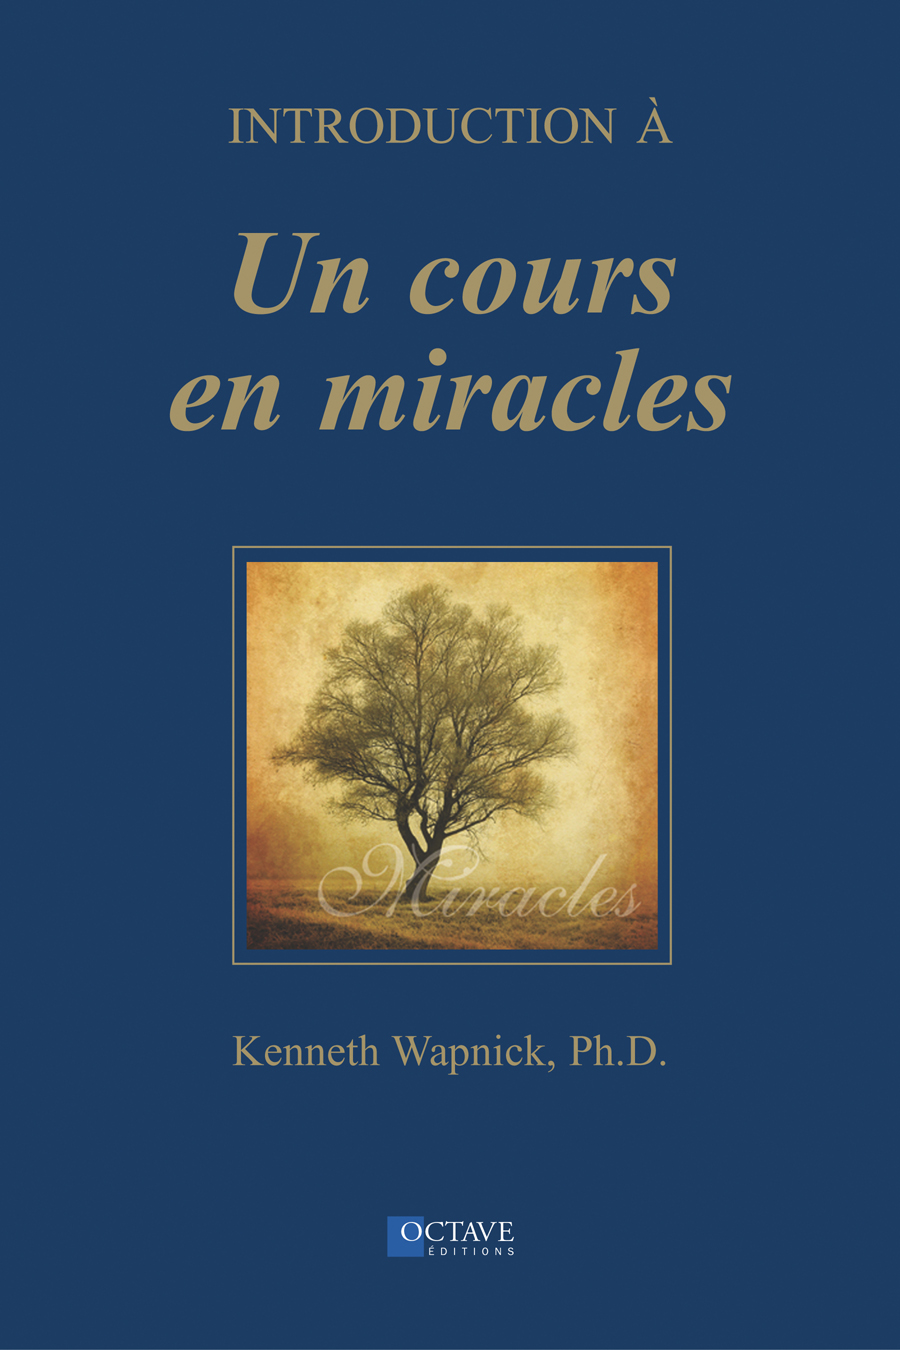 INTRODUCTION À UN COURS EN MIRACLES – Kenneth Wapnick